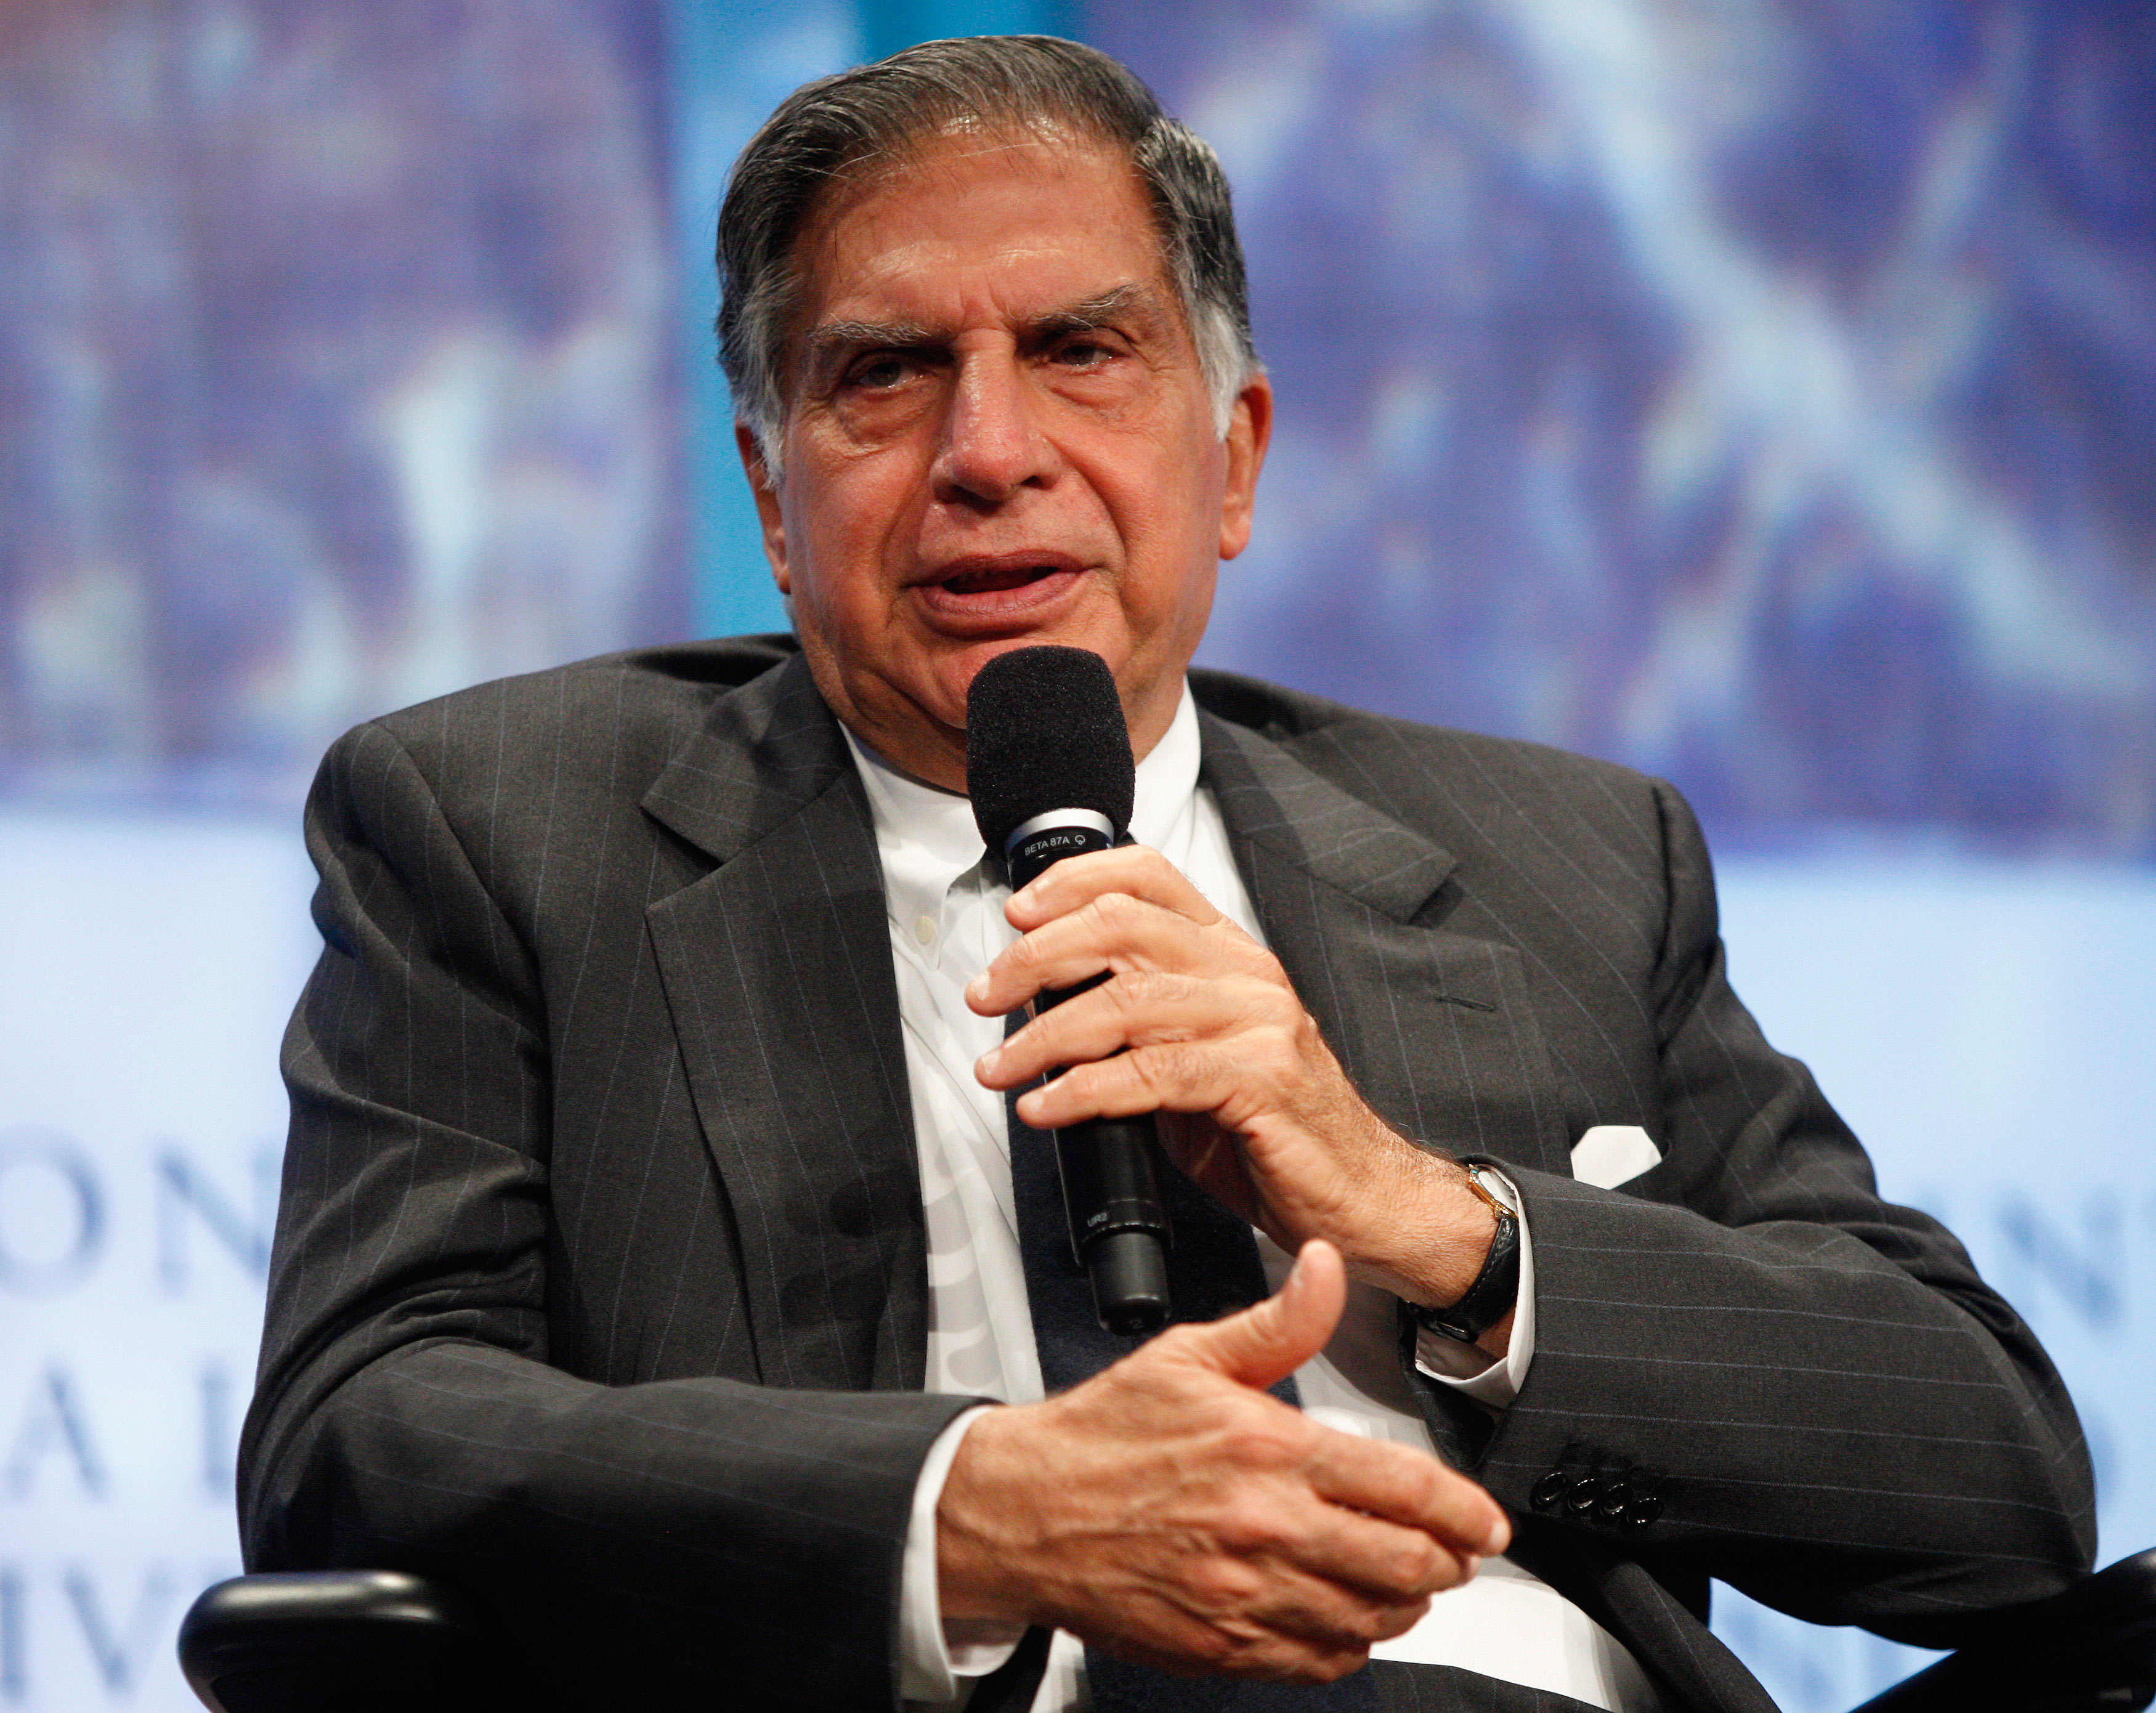 Tata Sons issues preference shares worth $7M to Ratan Tata, others